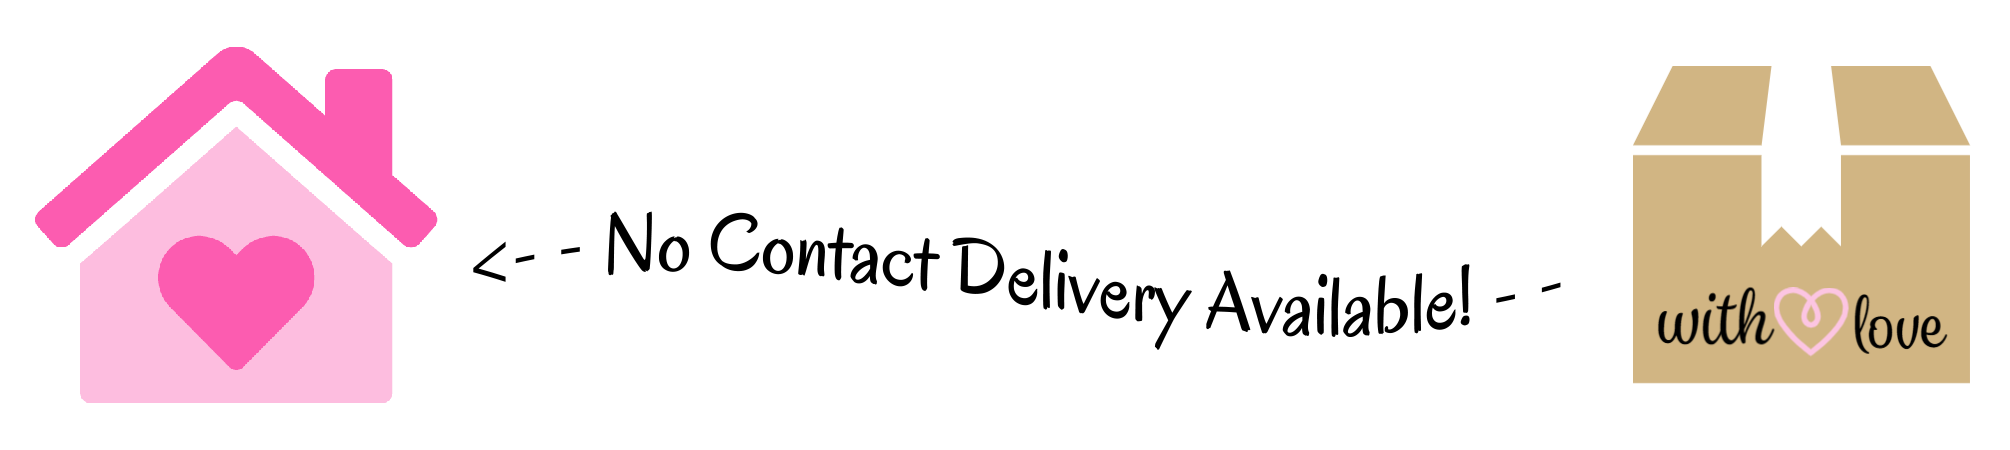 NoContactDelivery.png